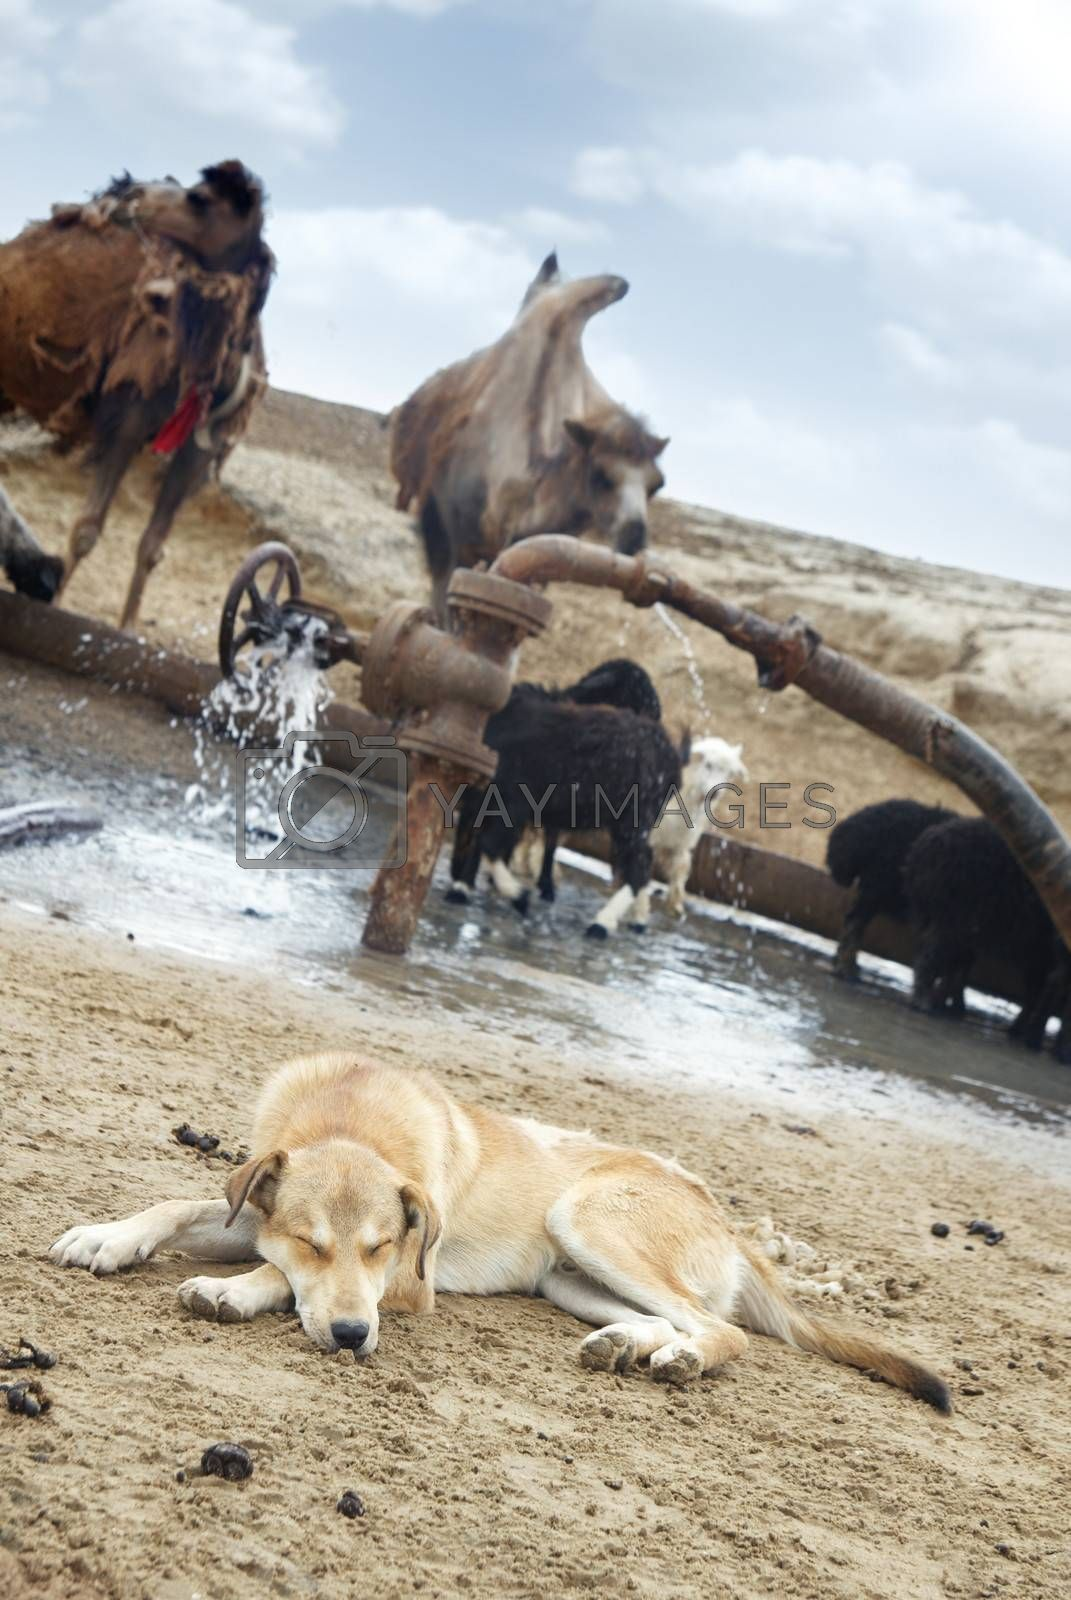 Sleeping shepherd dog and cattle at the watering place